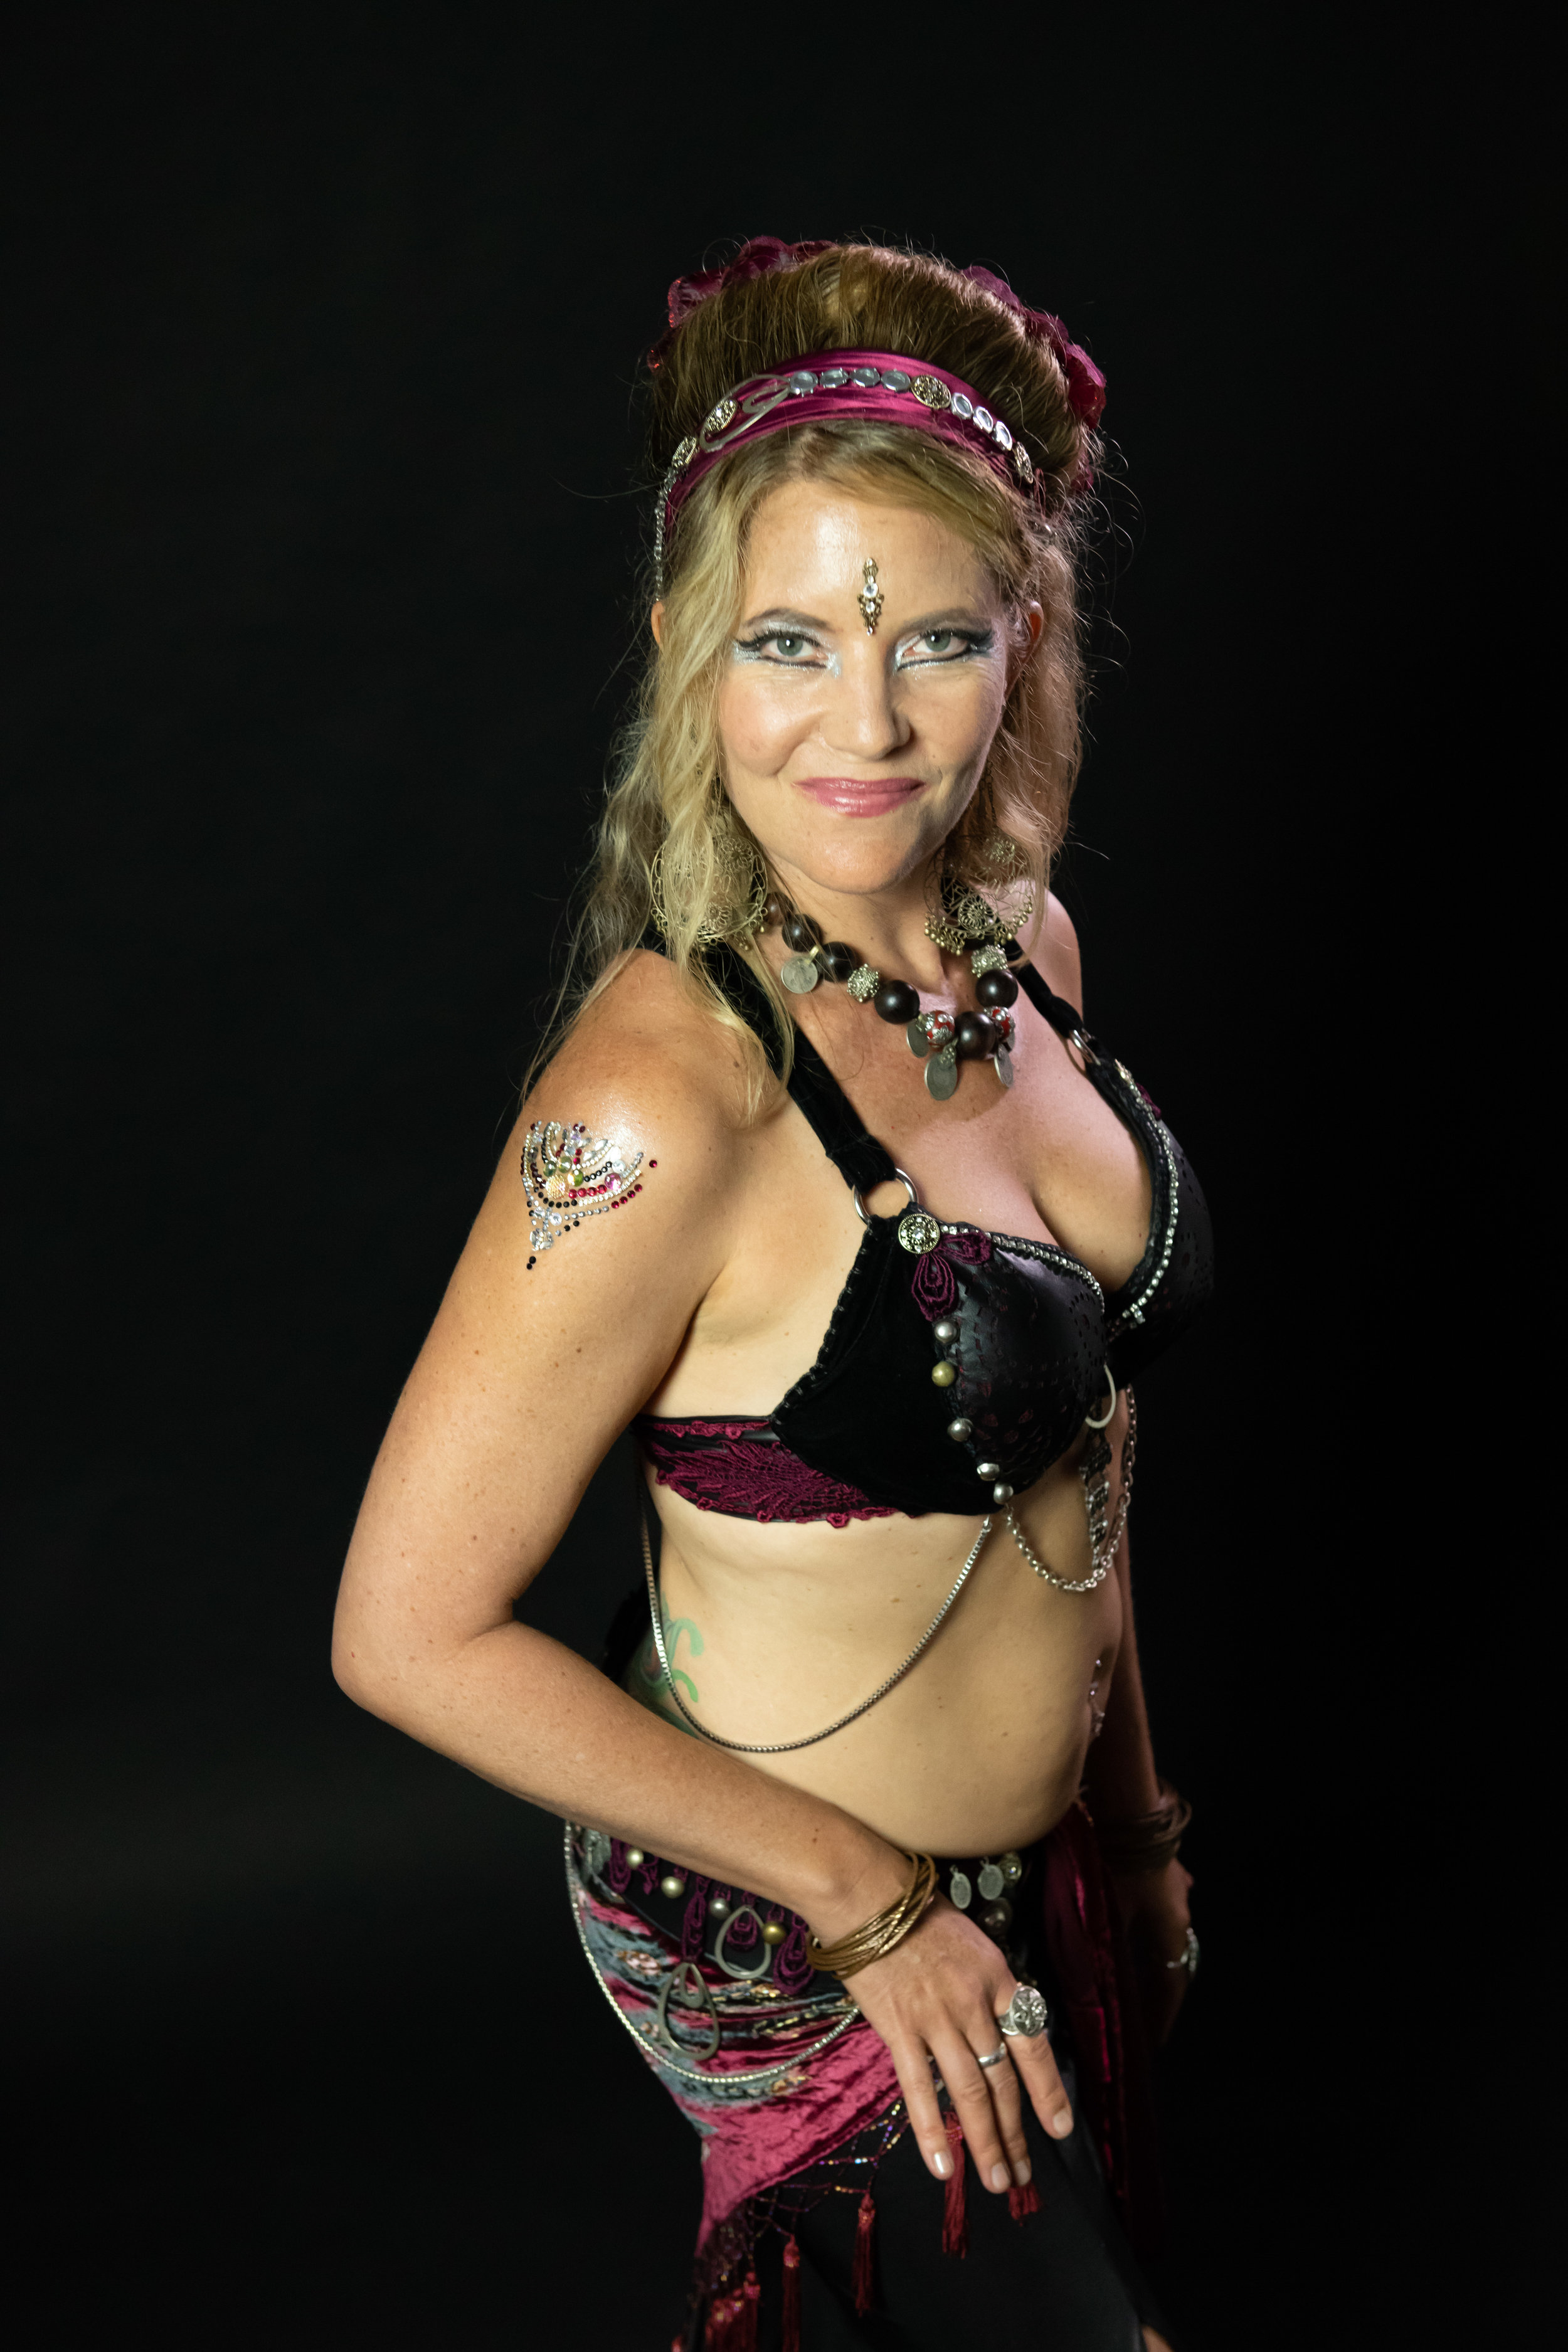 PAMELA SHERWOOD  Pamela brings over 30 years of dance experience and has an extensive background in Ballet, Tap, Modern and Jazz as well as a passion for salsa and ballroom dance. Tribal fusion belly dance entered into her life in Steamboat Springs, CO in 2009. Since then she has trained in various styles of belly dance including ITS, Improvisational Tribal Style, and has attended workshops with Rachel Brice, Lacey Sanchez, and Silvia Salamanca, to name a few favorites. She performed with Jasmir Belly Dance Troupe 2014-2016. She moved to Maui in 2016 and has been dancing and training with Lynette Day in Datura™ style as well as others. As a physical therapist since 1998 as well as a Certified Gyrotonic and Pilates Method Alliance Certified Pilates Teacher since 1999, she loves to watch the body move efficiently and her fascination with movement blends her work and passion for dance together.